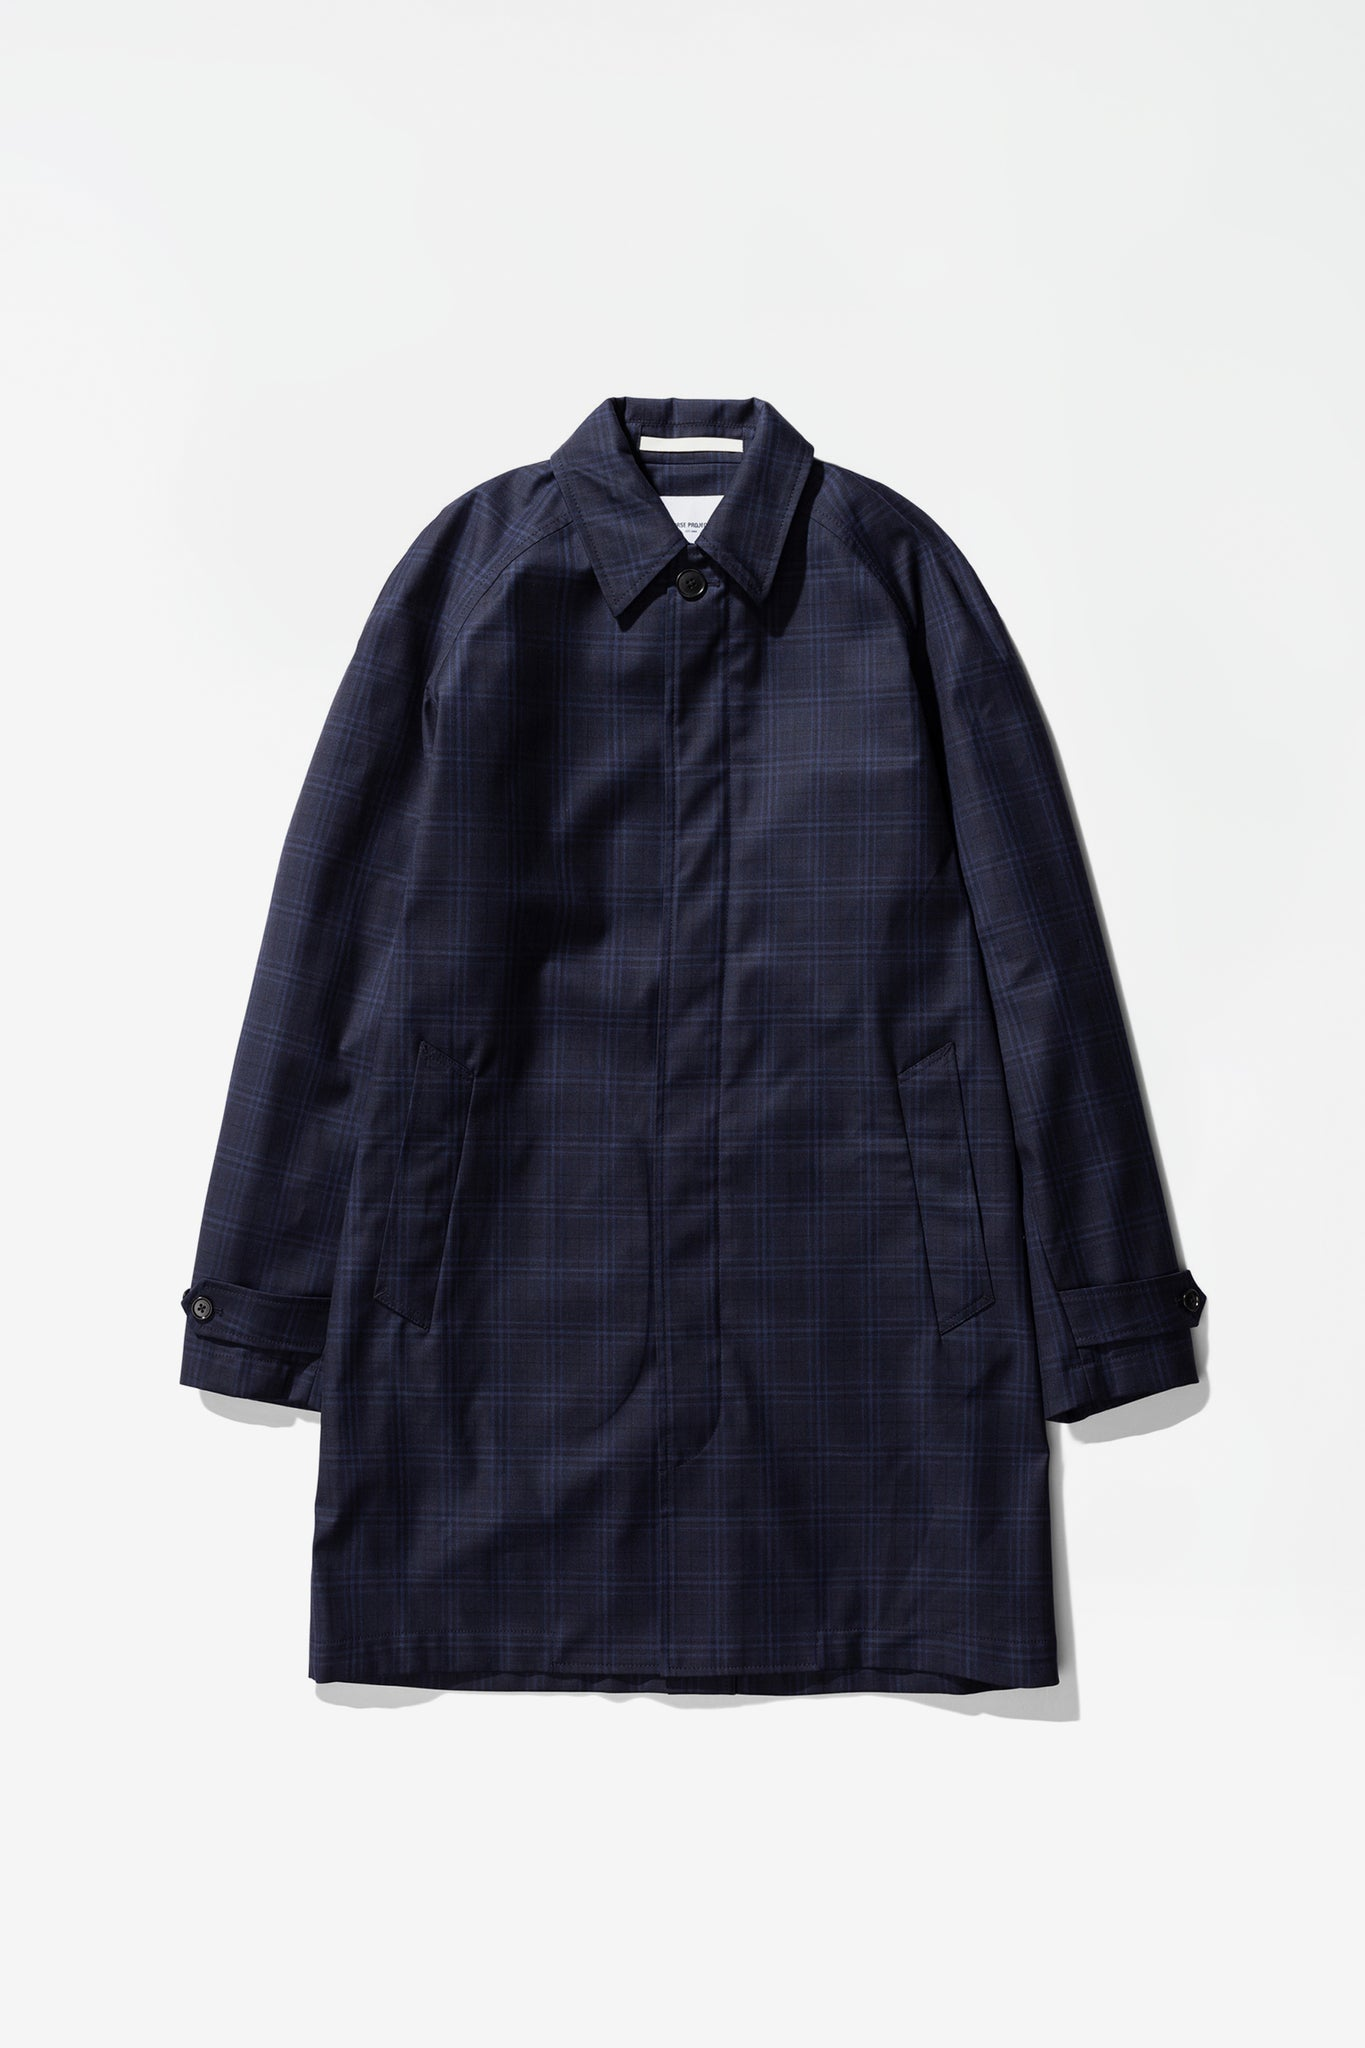 Svalbard 3 layer technical wool navy